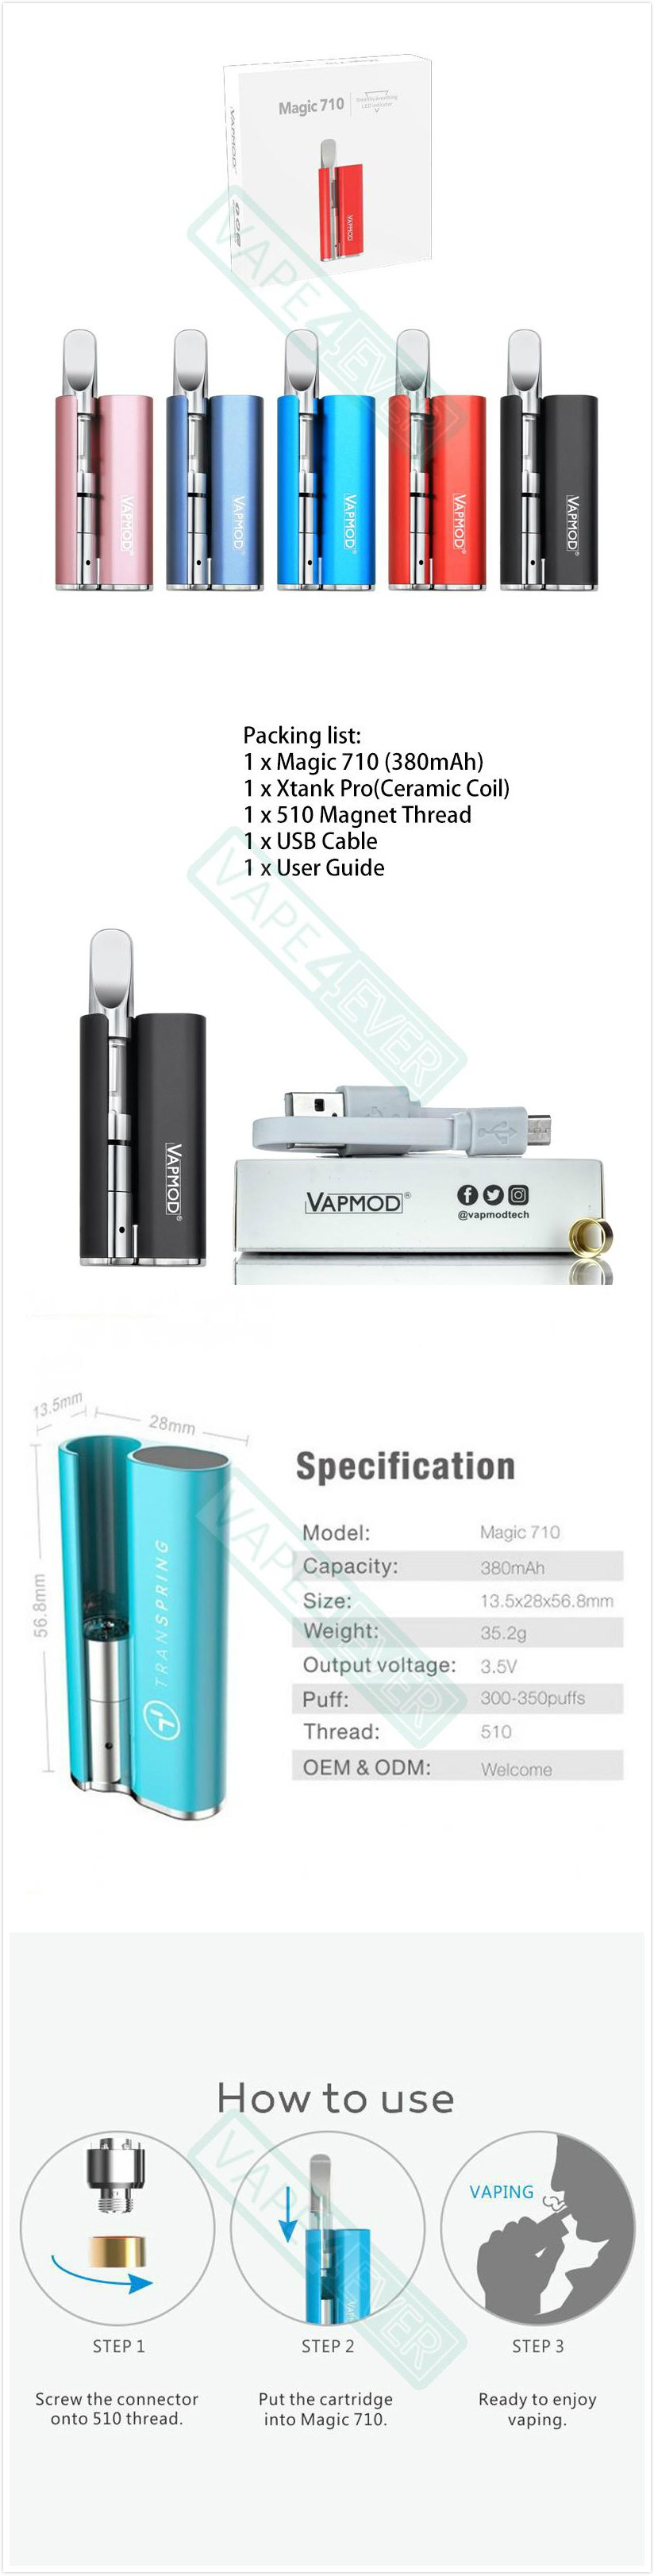 Vapmod Magic 710 Herbal Starter Kit 380mAh Concentrate Vaporizer With Xtank Pro Cartridge Instruction